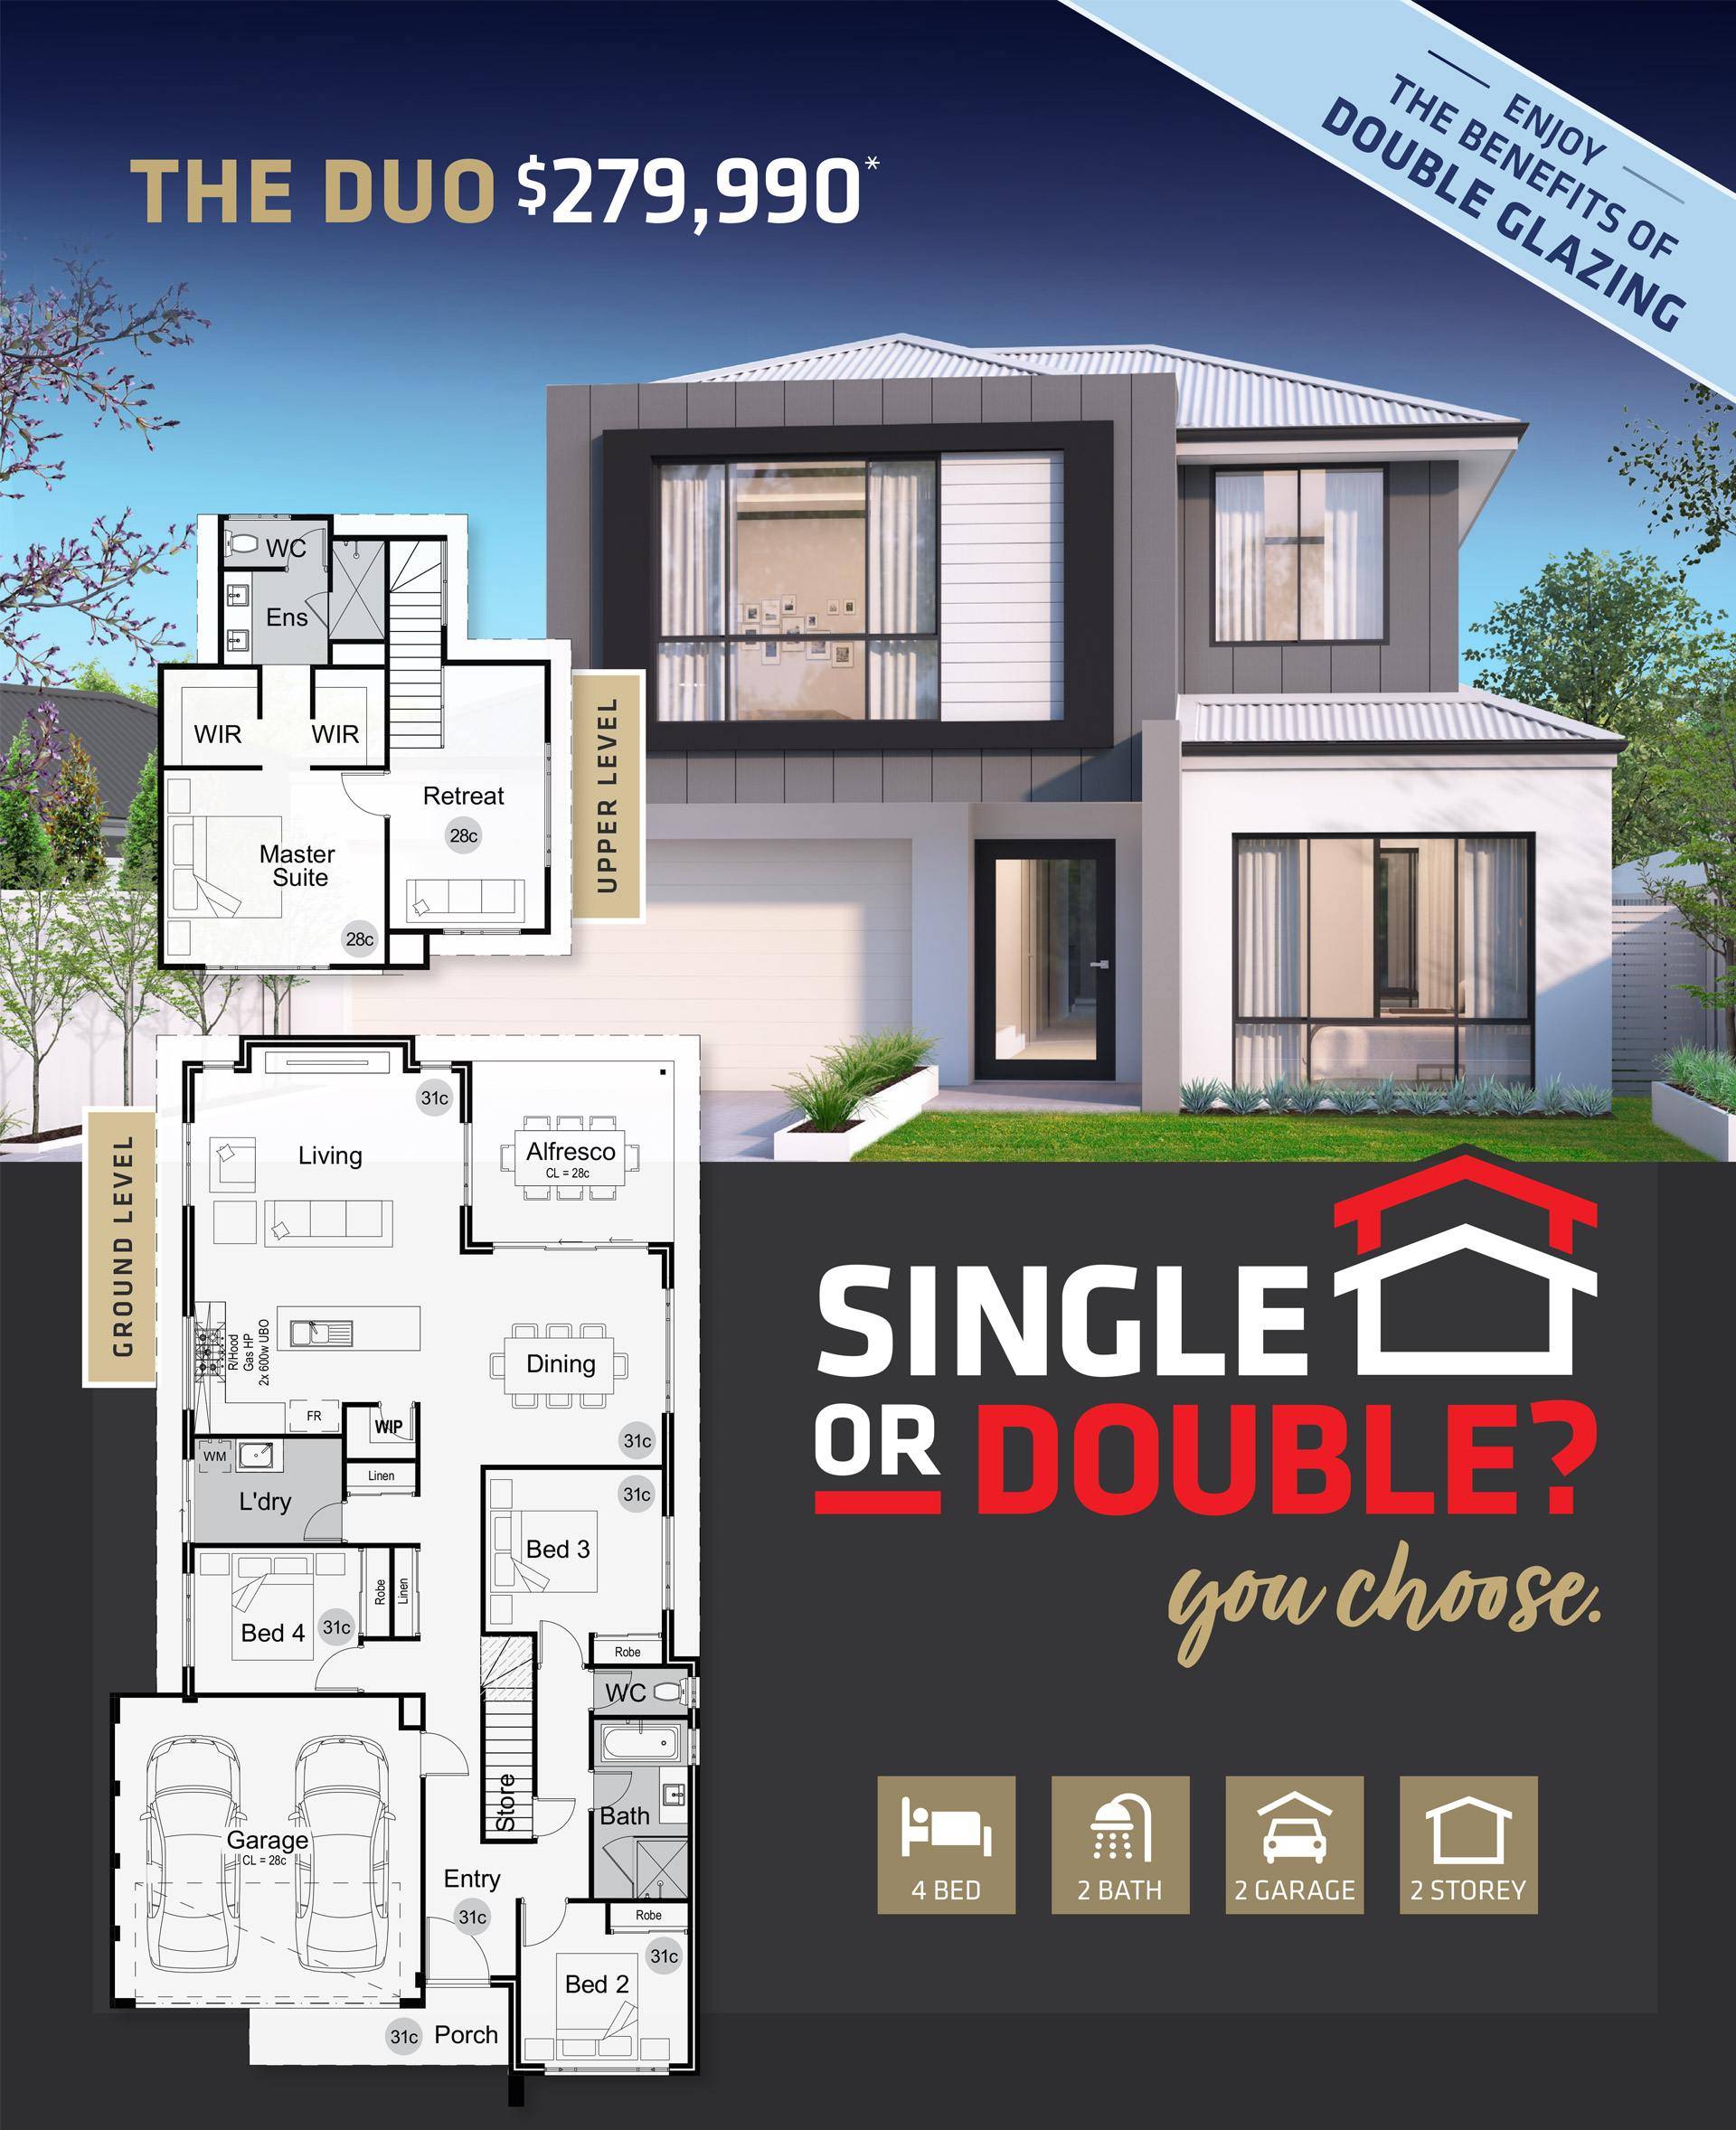 101 Residential The Duo promotion banner